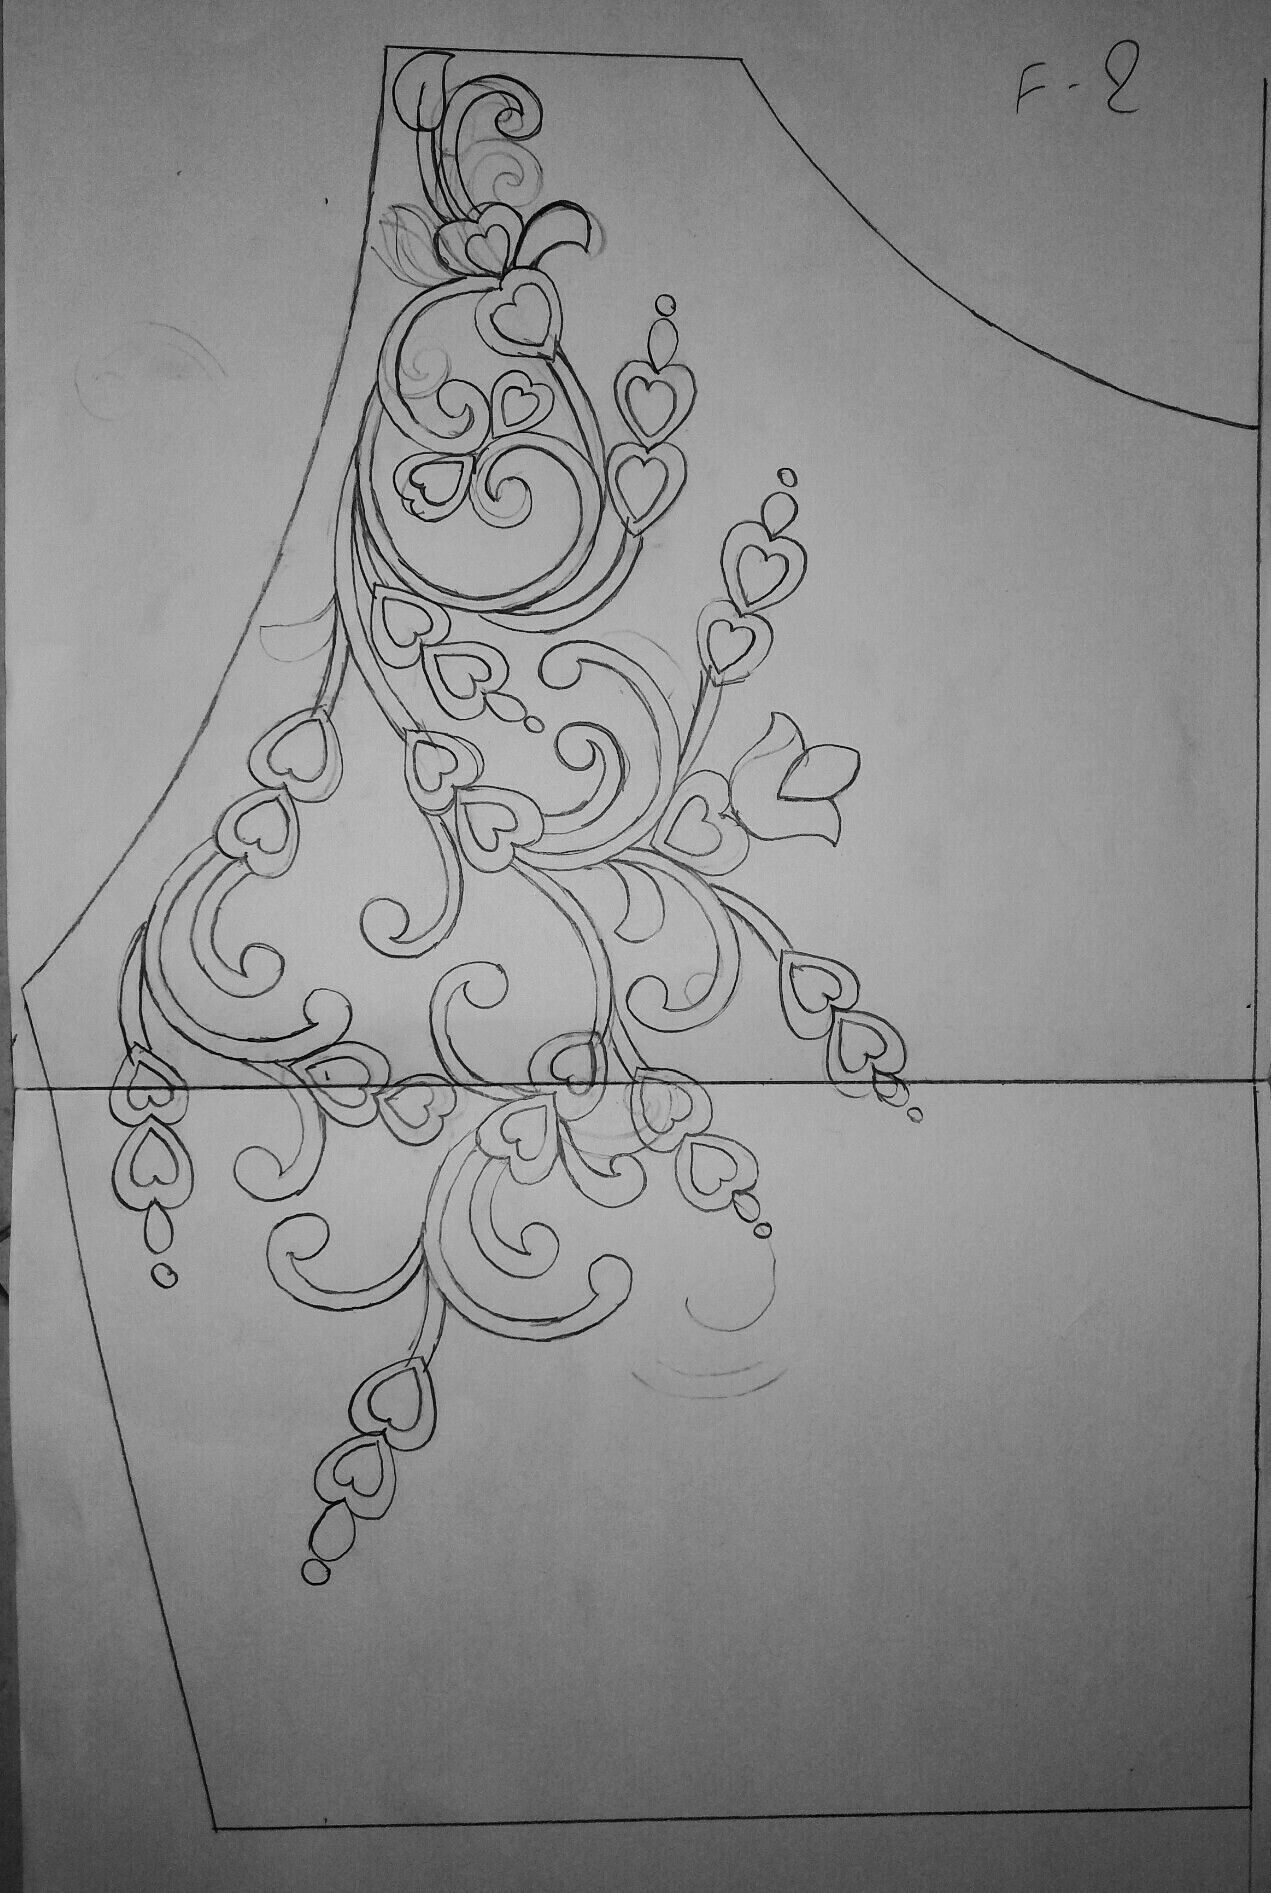 Pin by aqm ka on design pinterest embroidery and outlines